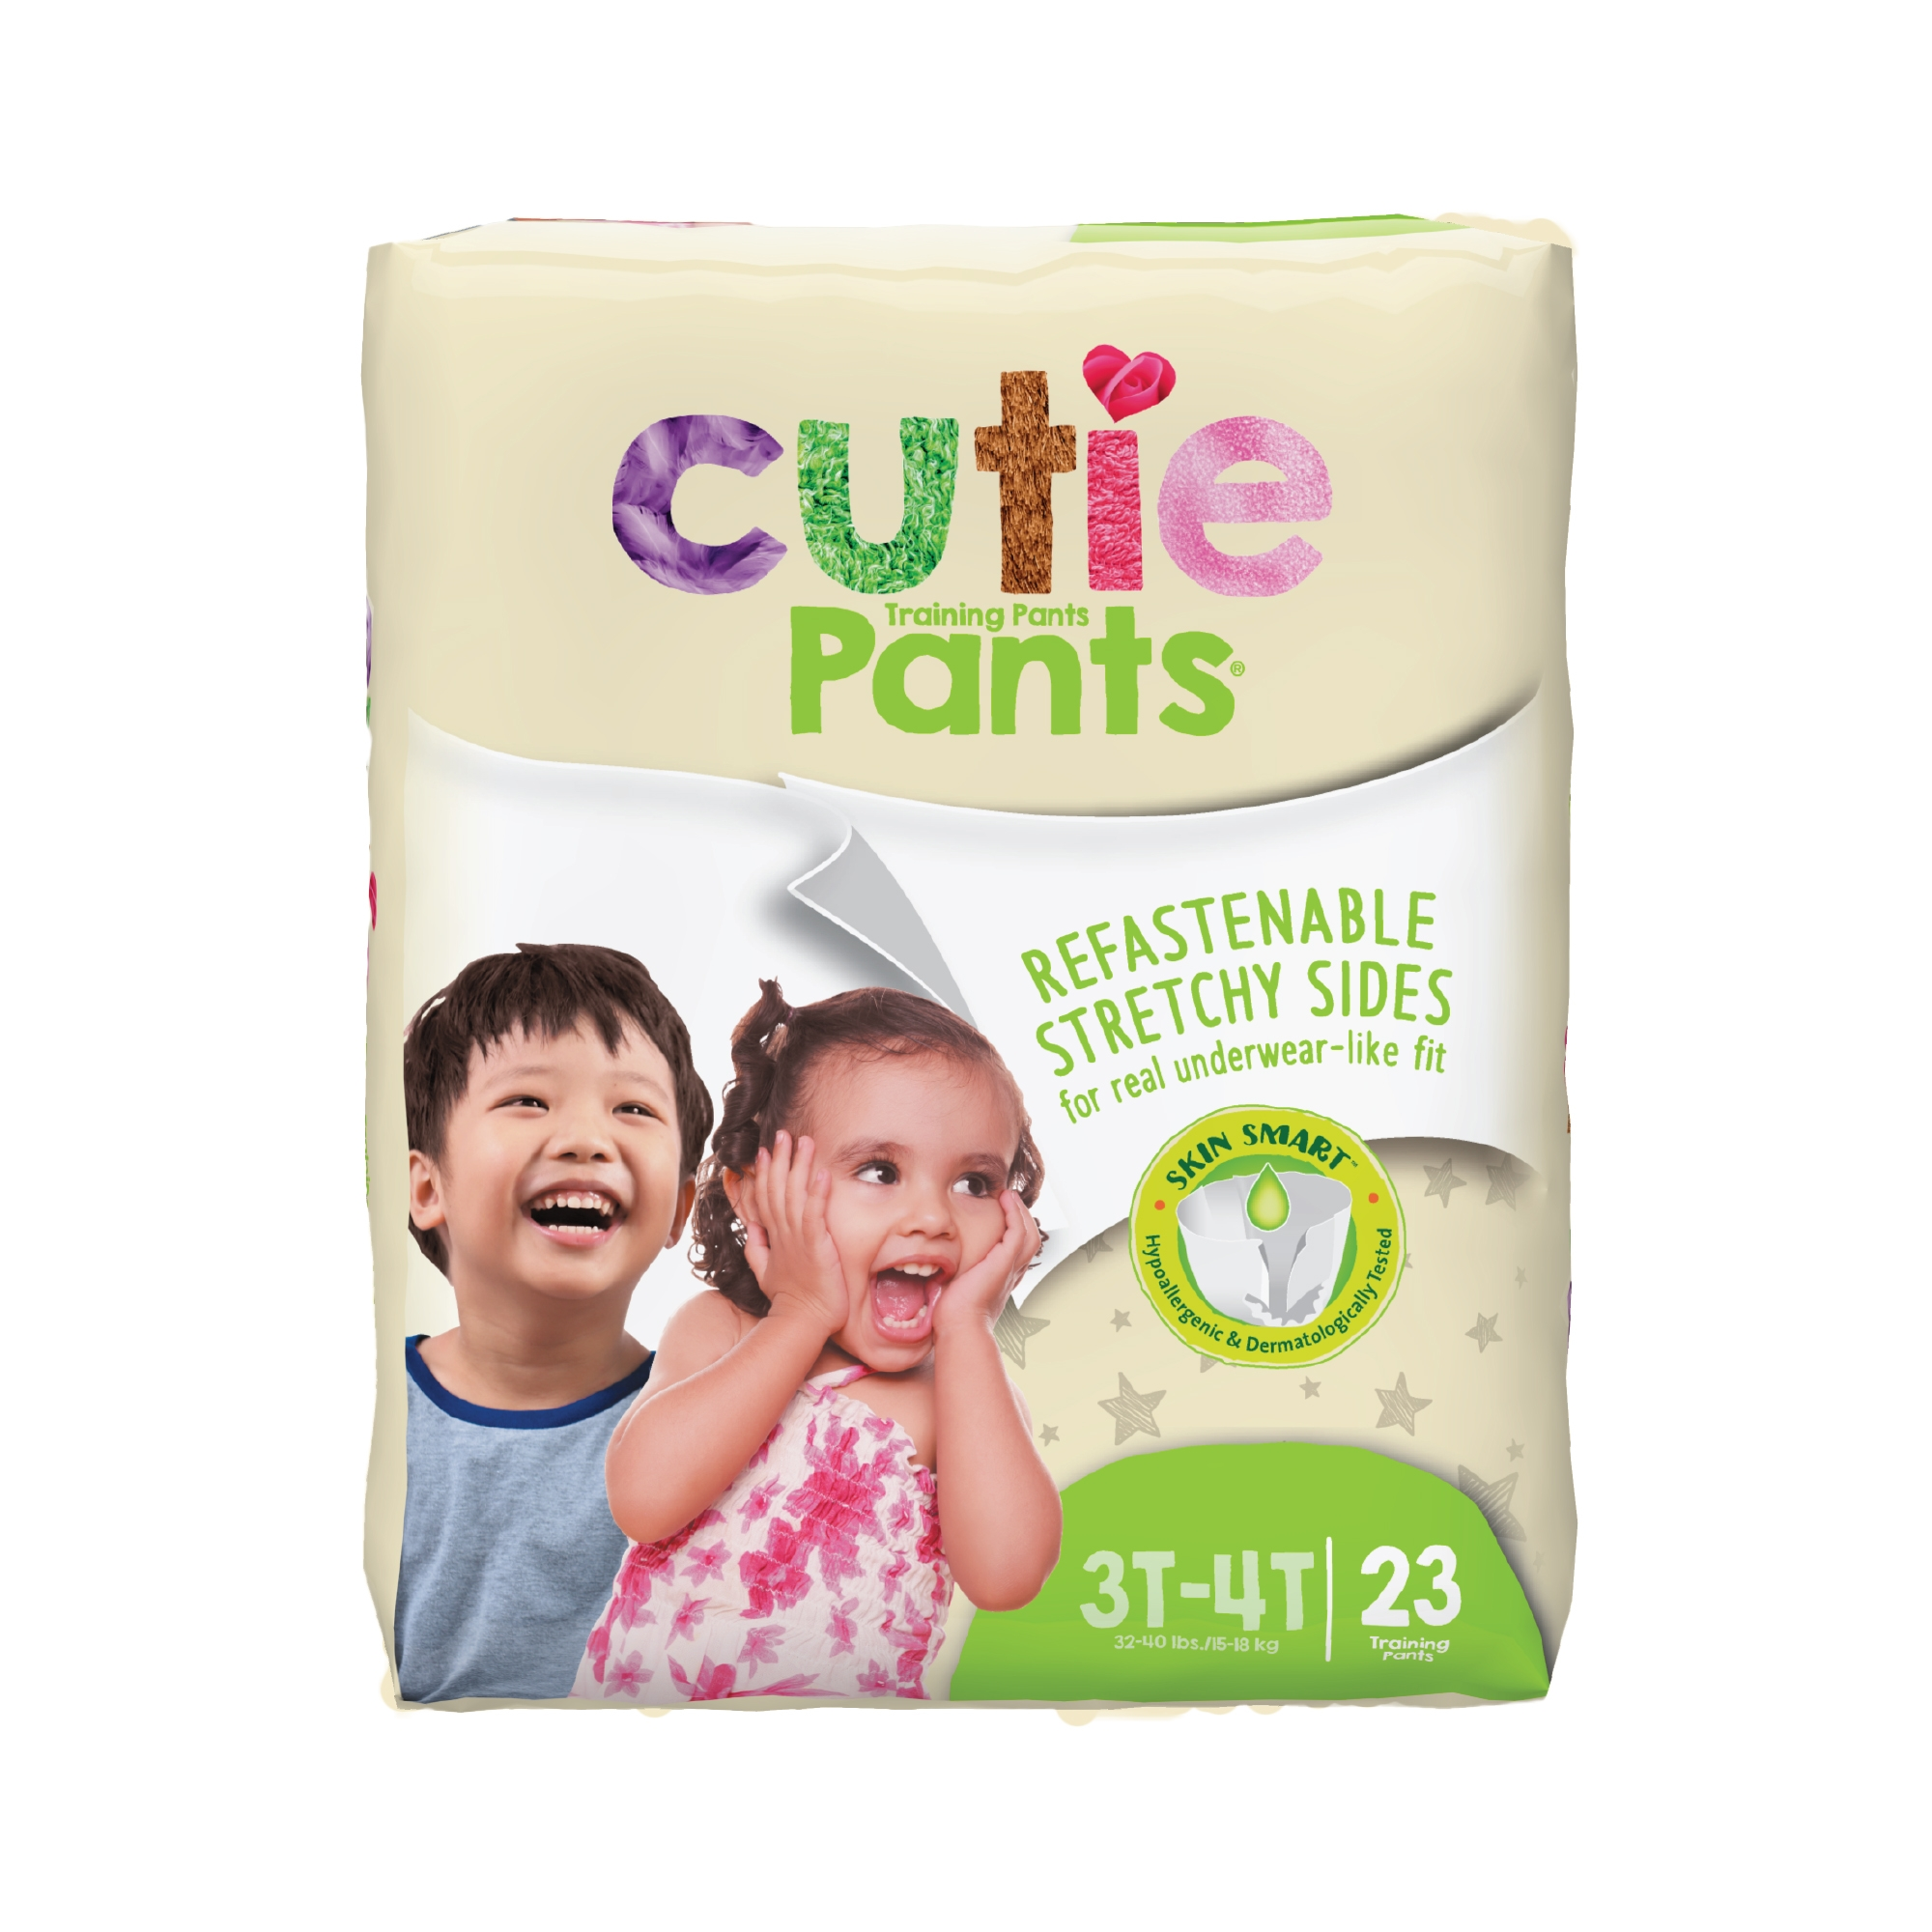 Cutie Pants Toddler Disposable Training Pants Pull ups, Heavy, WP8001/1, Size 3T-4T 32-40 lbs - Case of 92